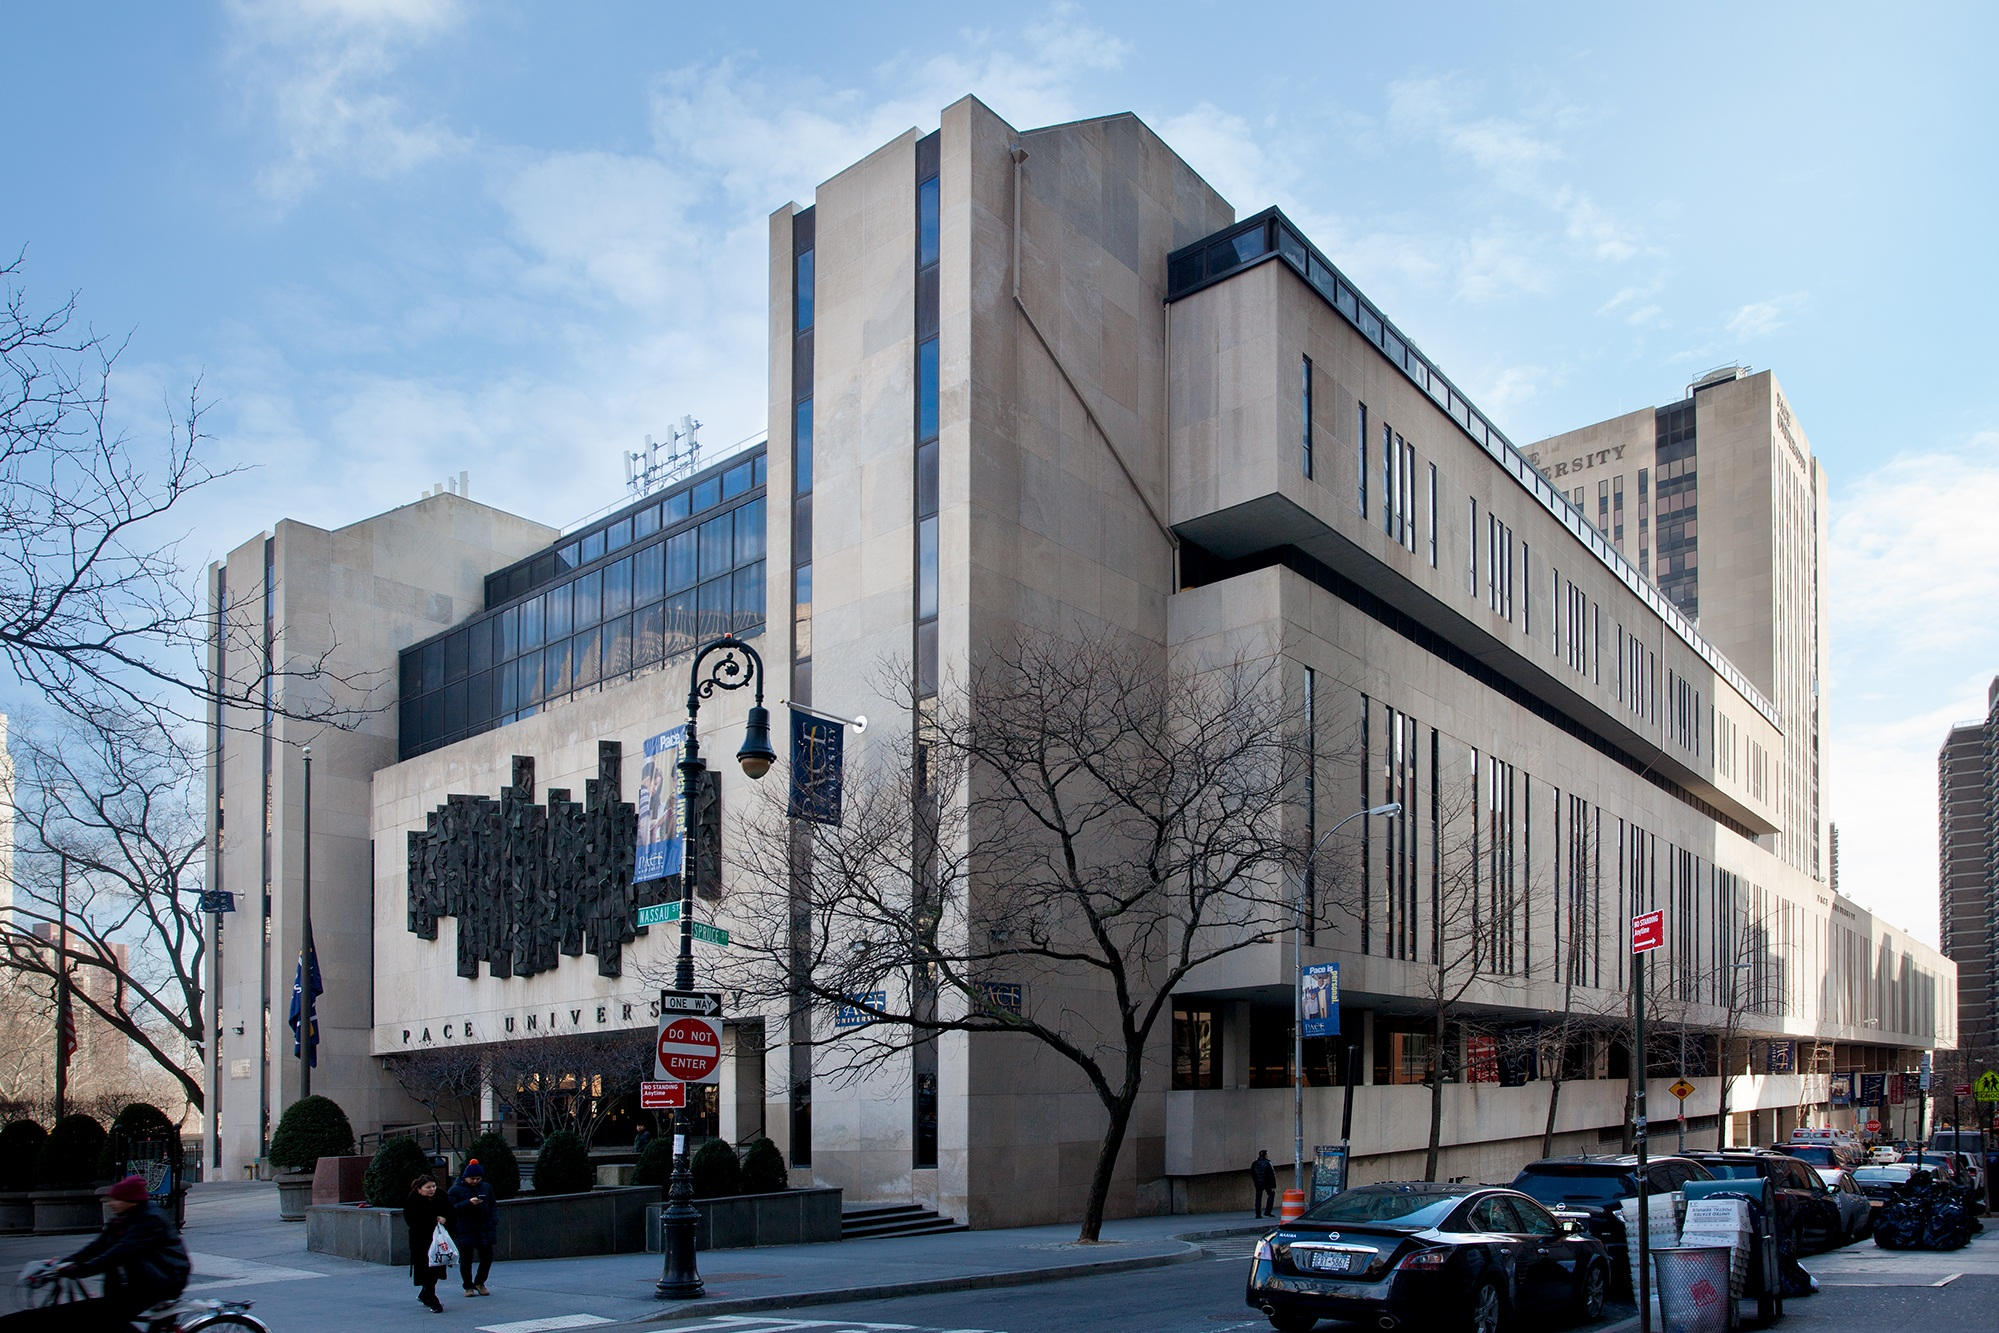 FISP Services at Pace - January 30, 2019Continuing our work at Pace University, Loci has been engaged to provide FISP services at the exterior of 1 Pace Plaza, a 500,000 sf building and the campus center.